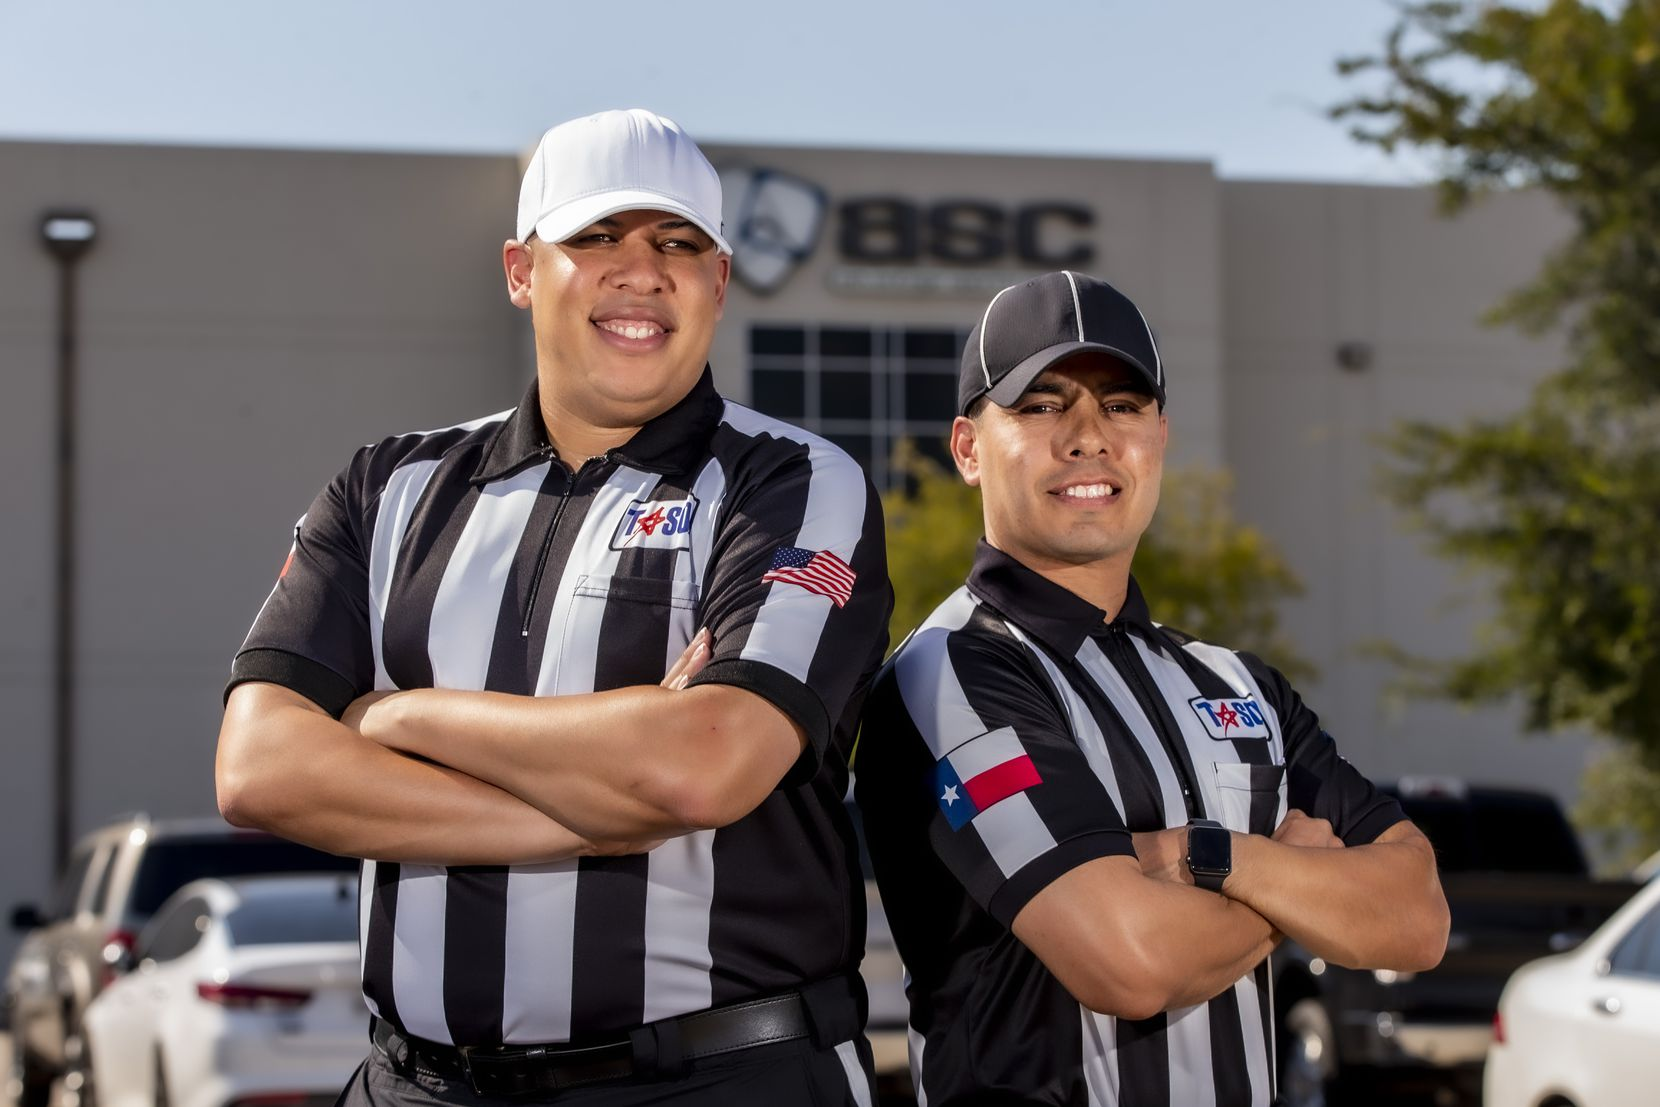 Rickey Herron II, President of the Dallas Football Officials Association, left, and Xavier Velazquez, a head linesman, pose for a photo outside of the Advantage Sports Complex in Carrollton, Saturday, August 22, 2020. There is a shortage of officials for high school football.